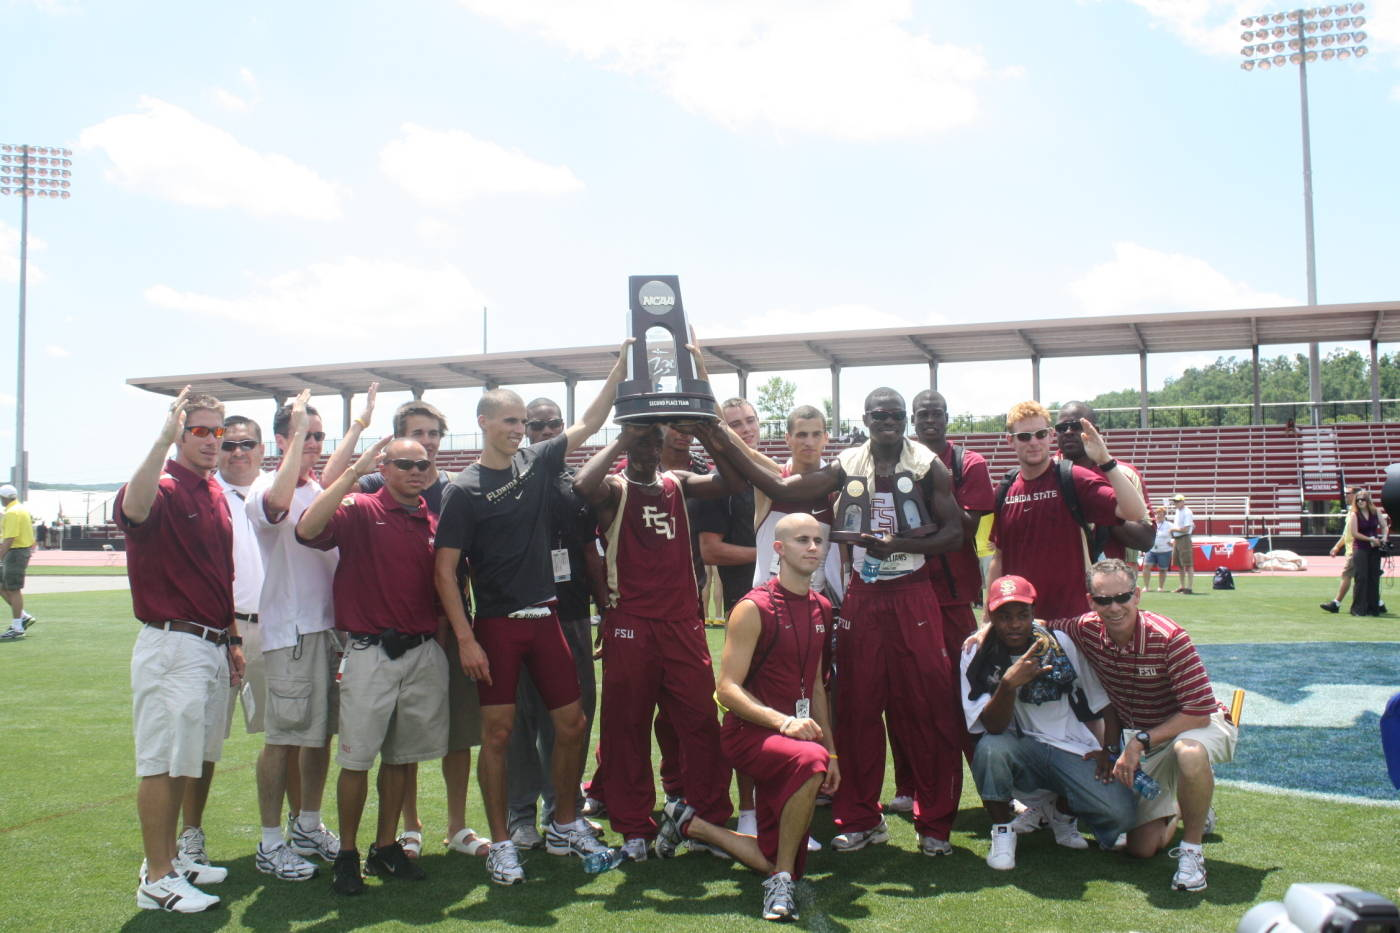 The Seminole men's team - 2009 second place finishers.